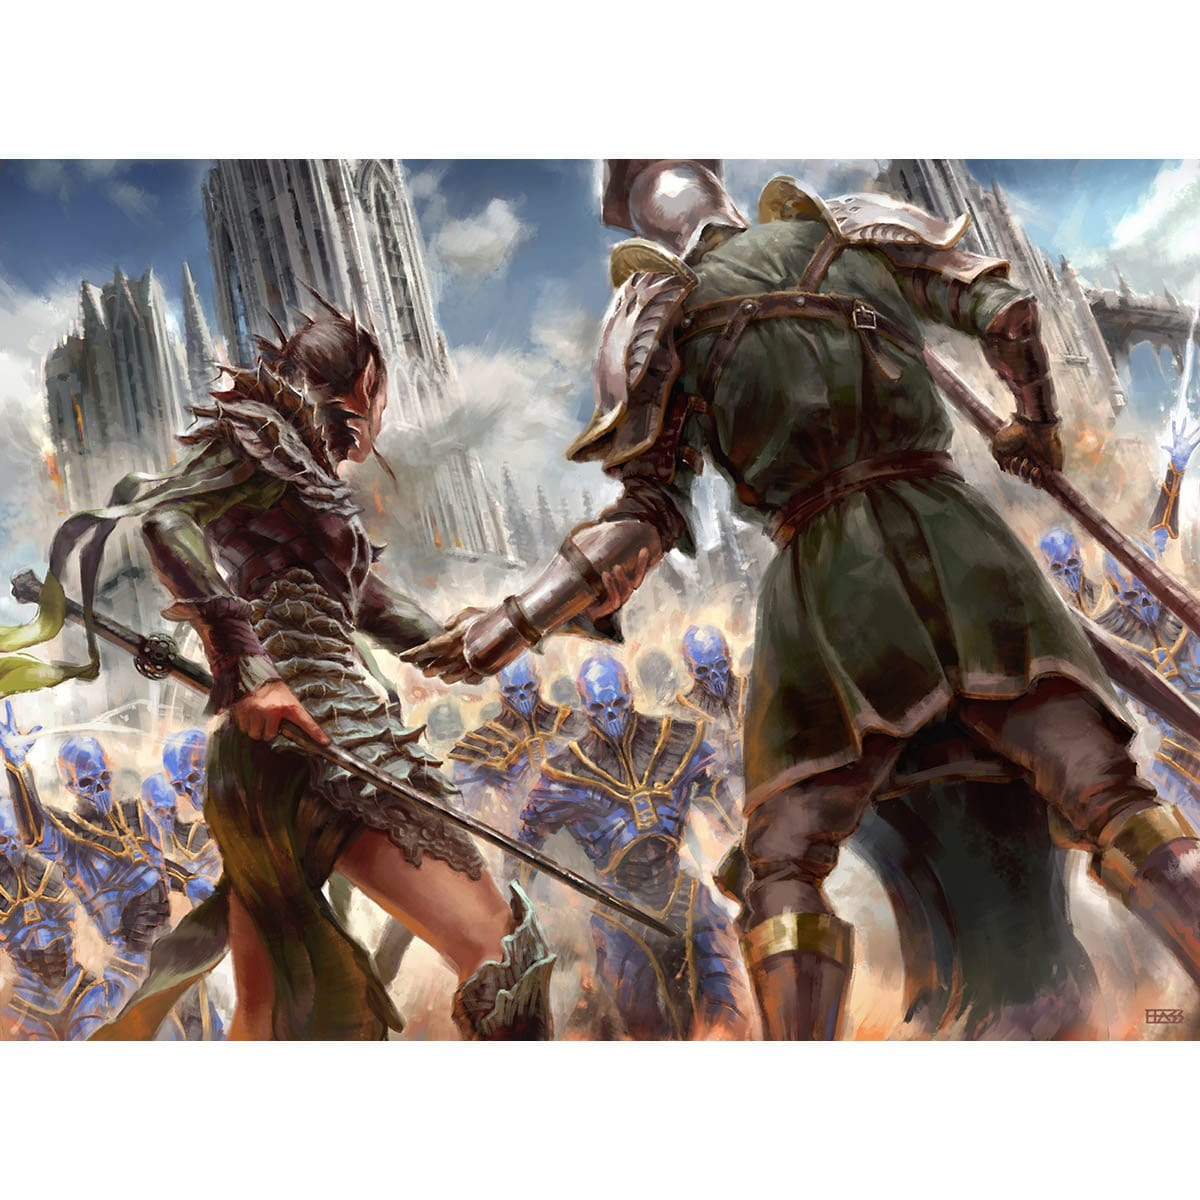 Band Together Print - Print - Original Magic Art - Accessories for Magic the Gathering and other card games